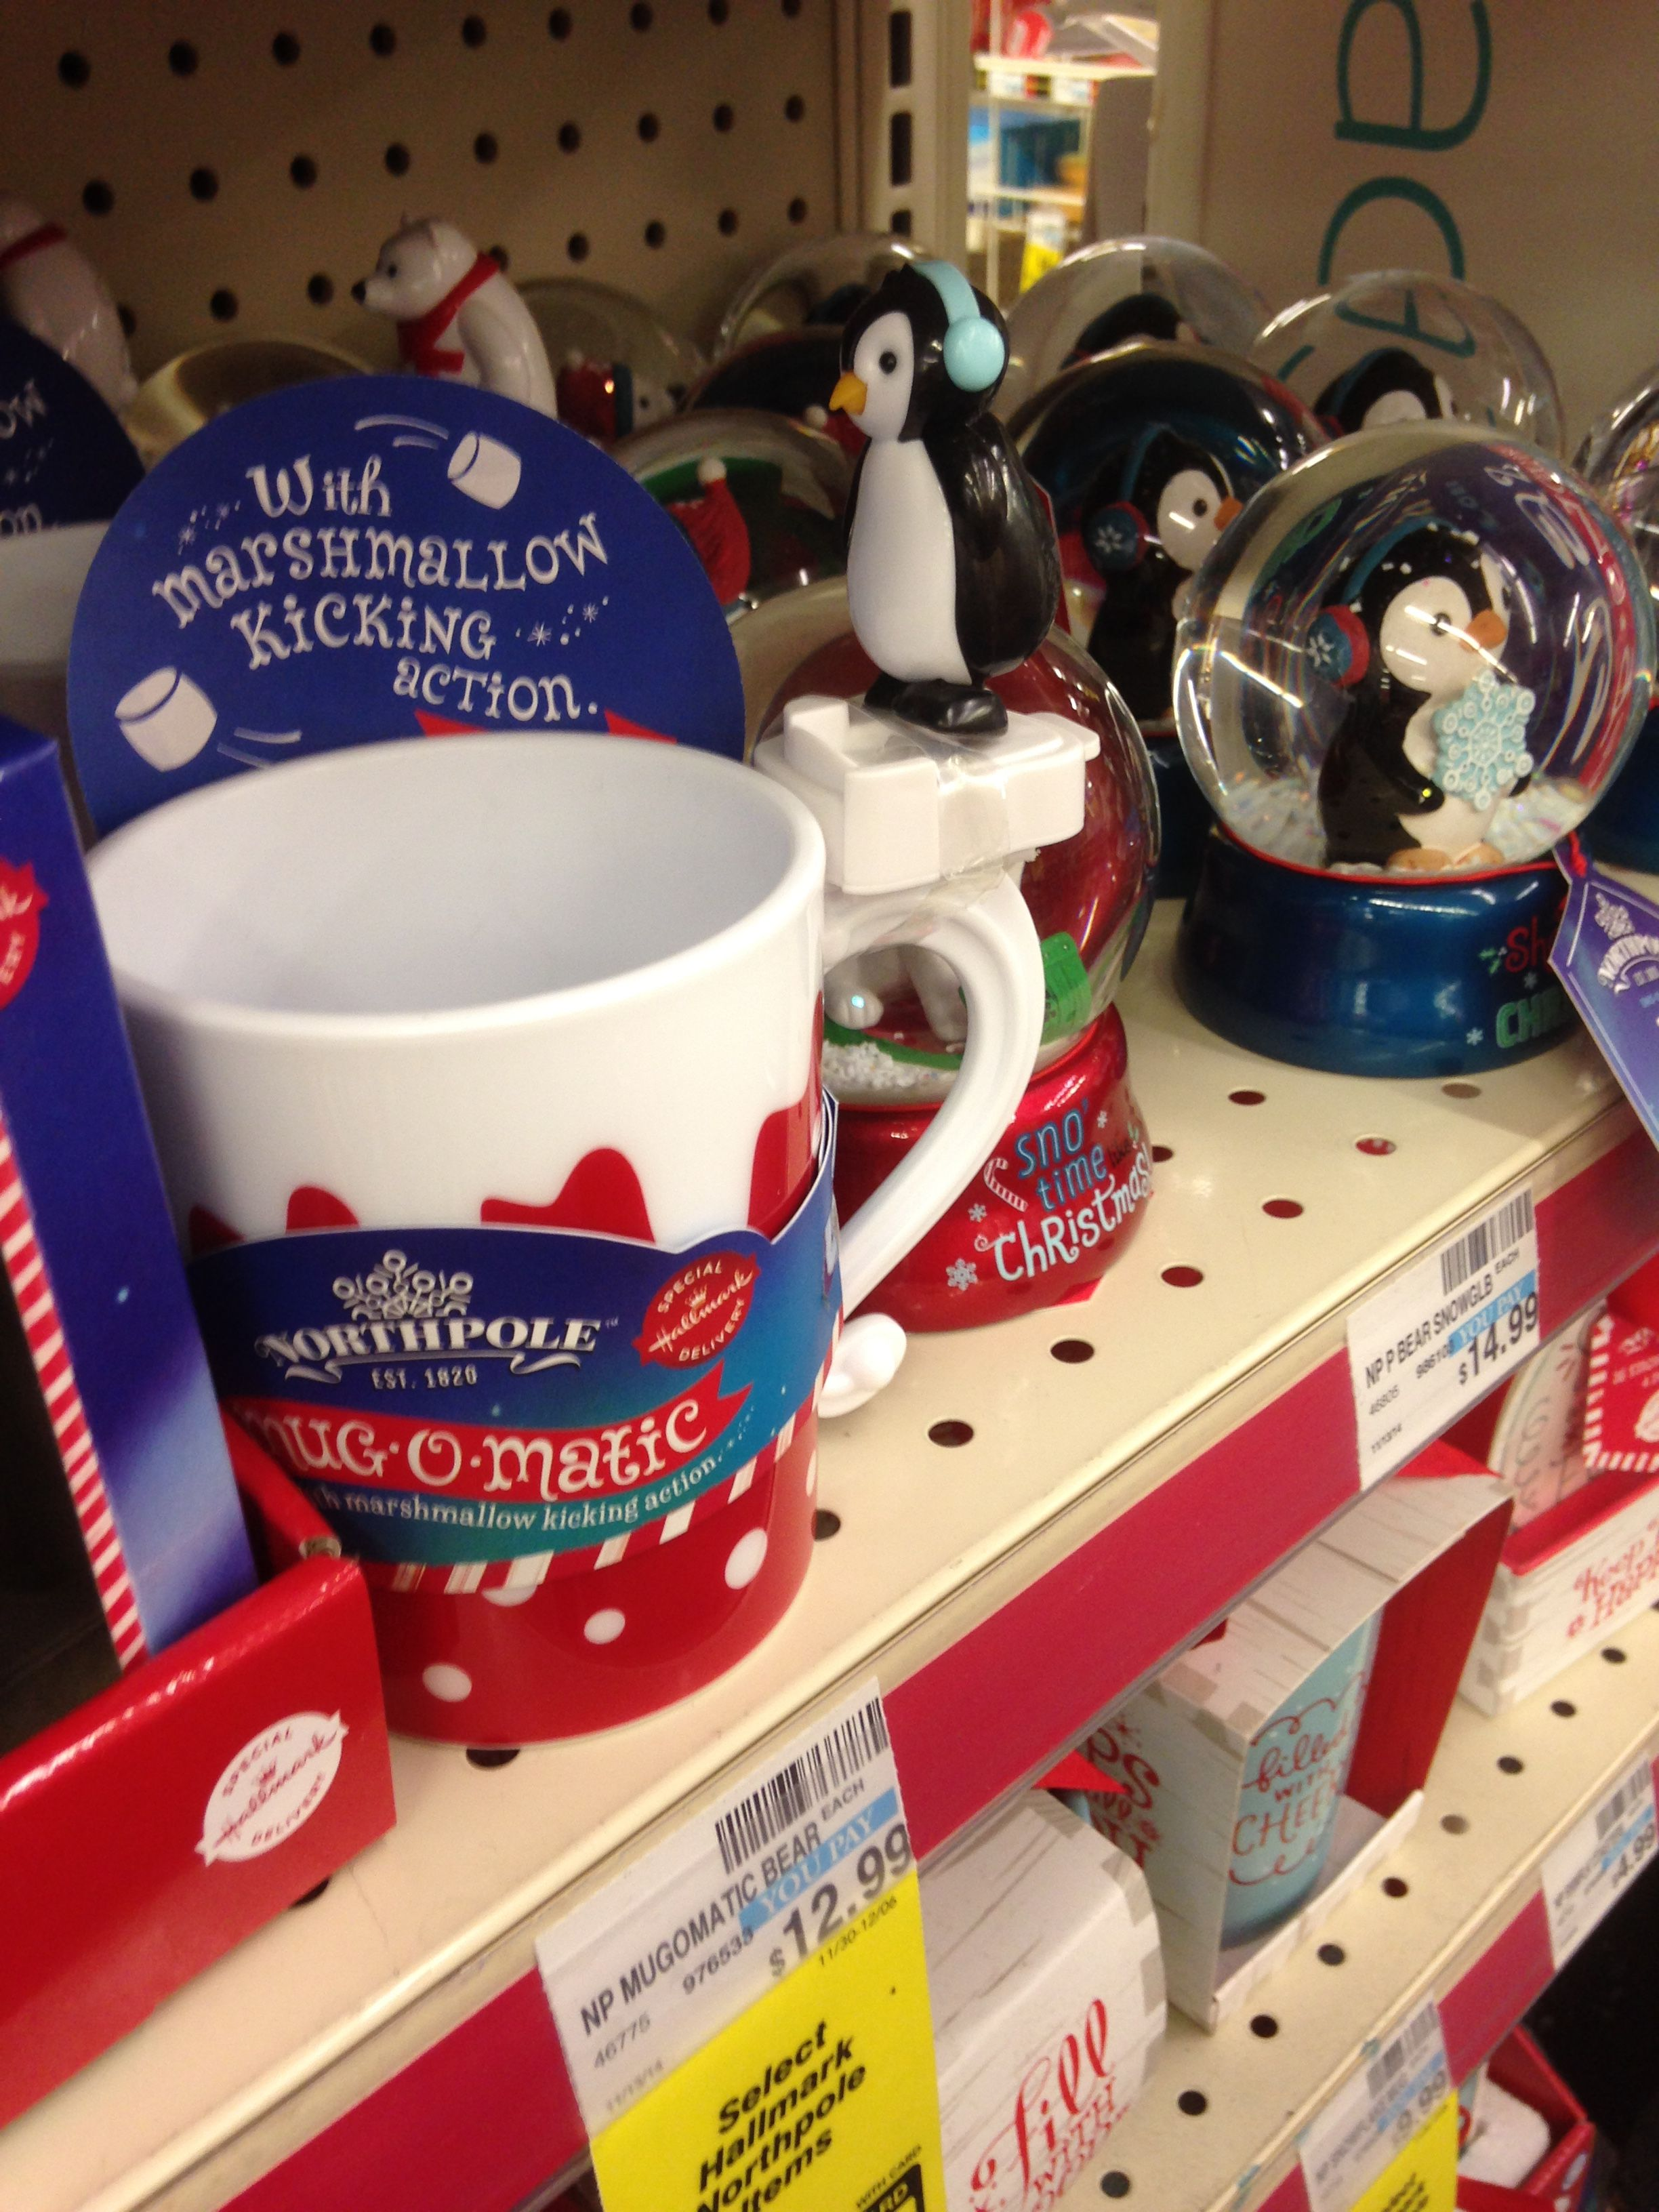 Anything with penguins this particular mug has a penguin